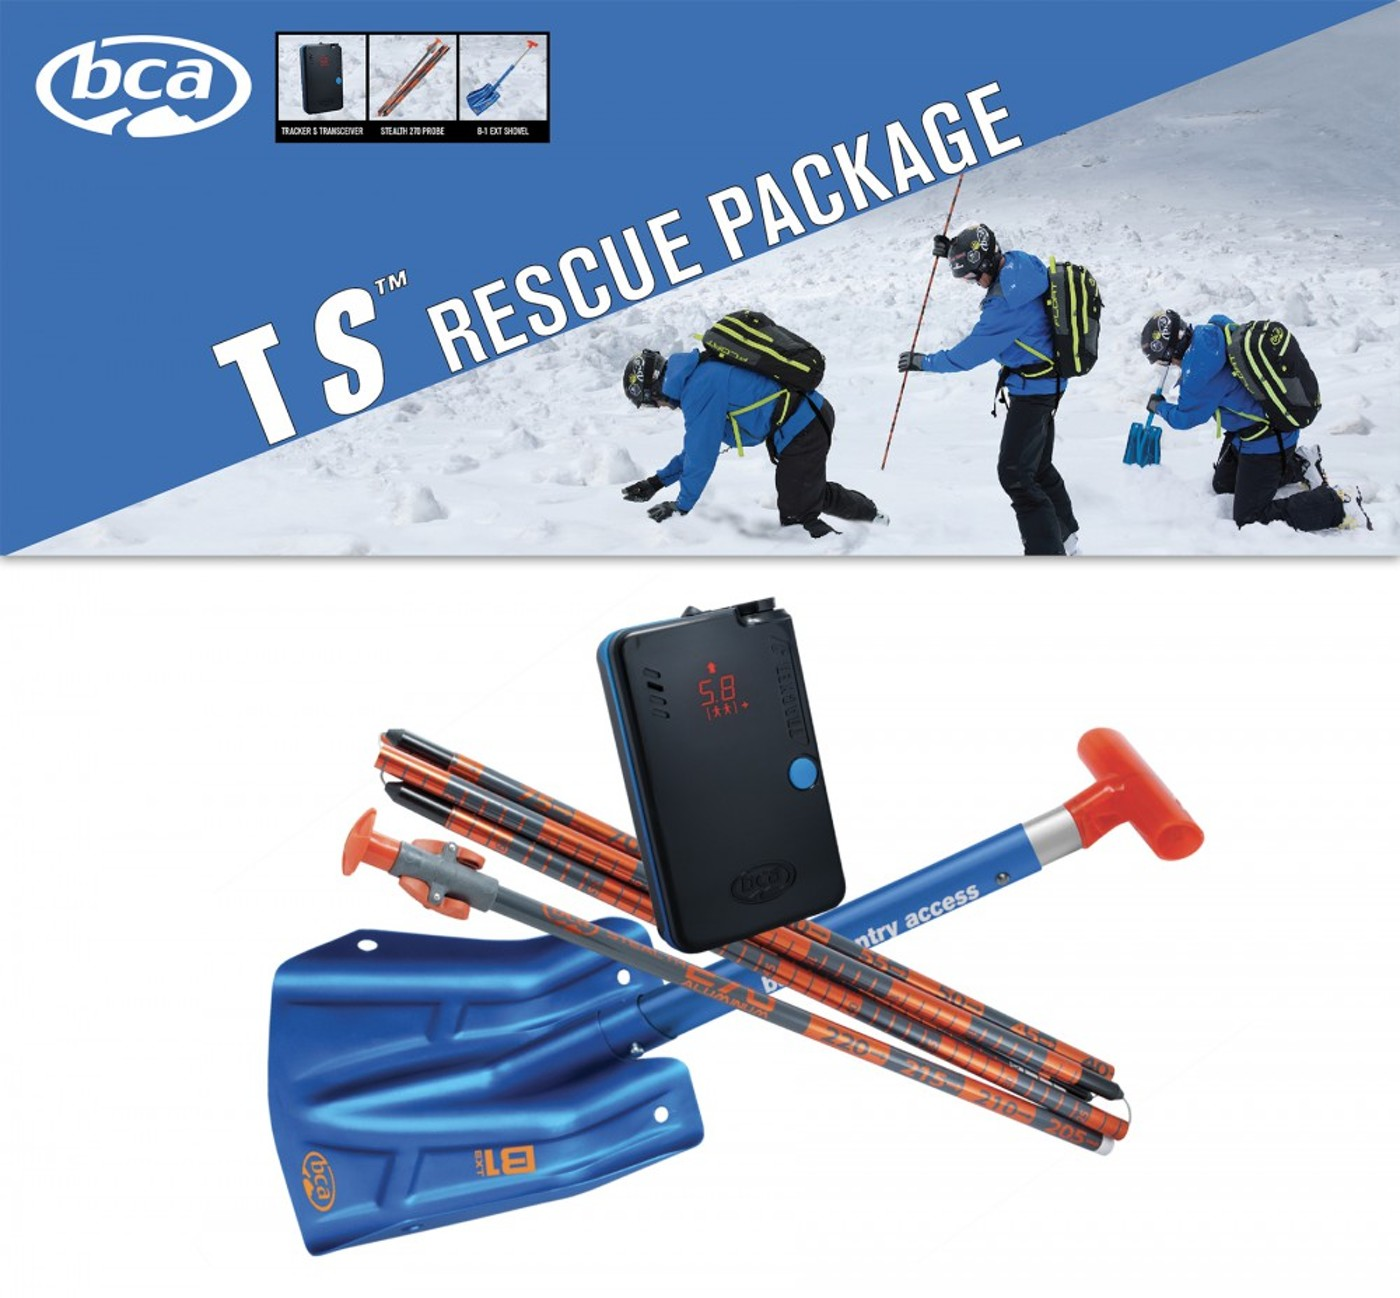 BCA TS Rescue Package